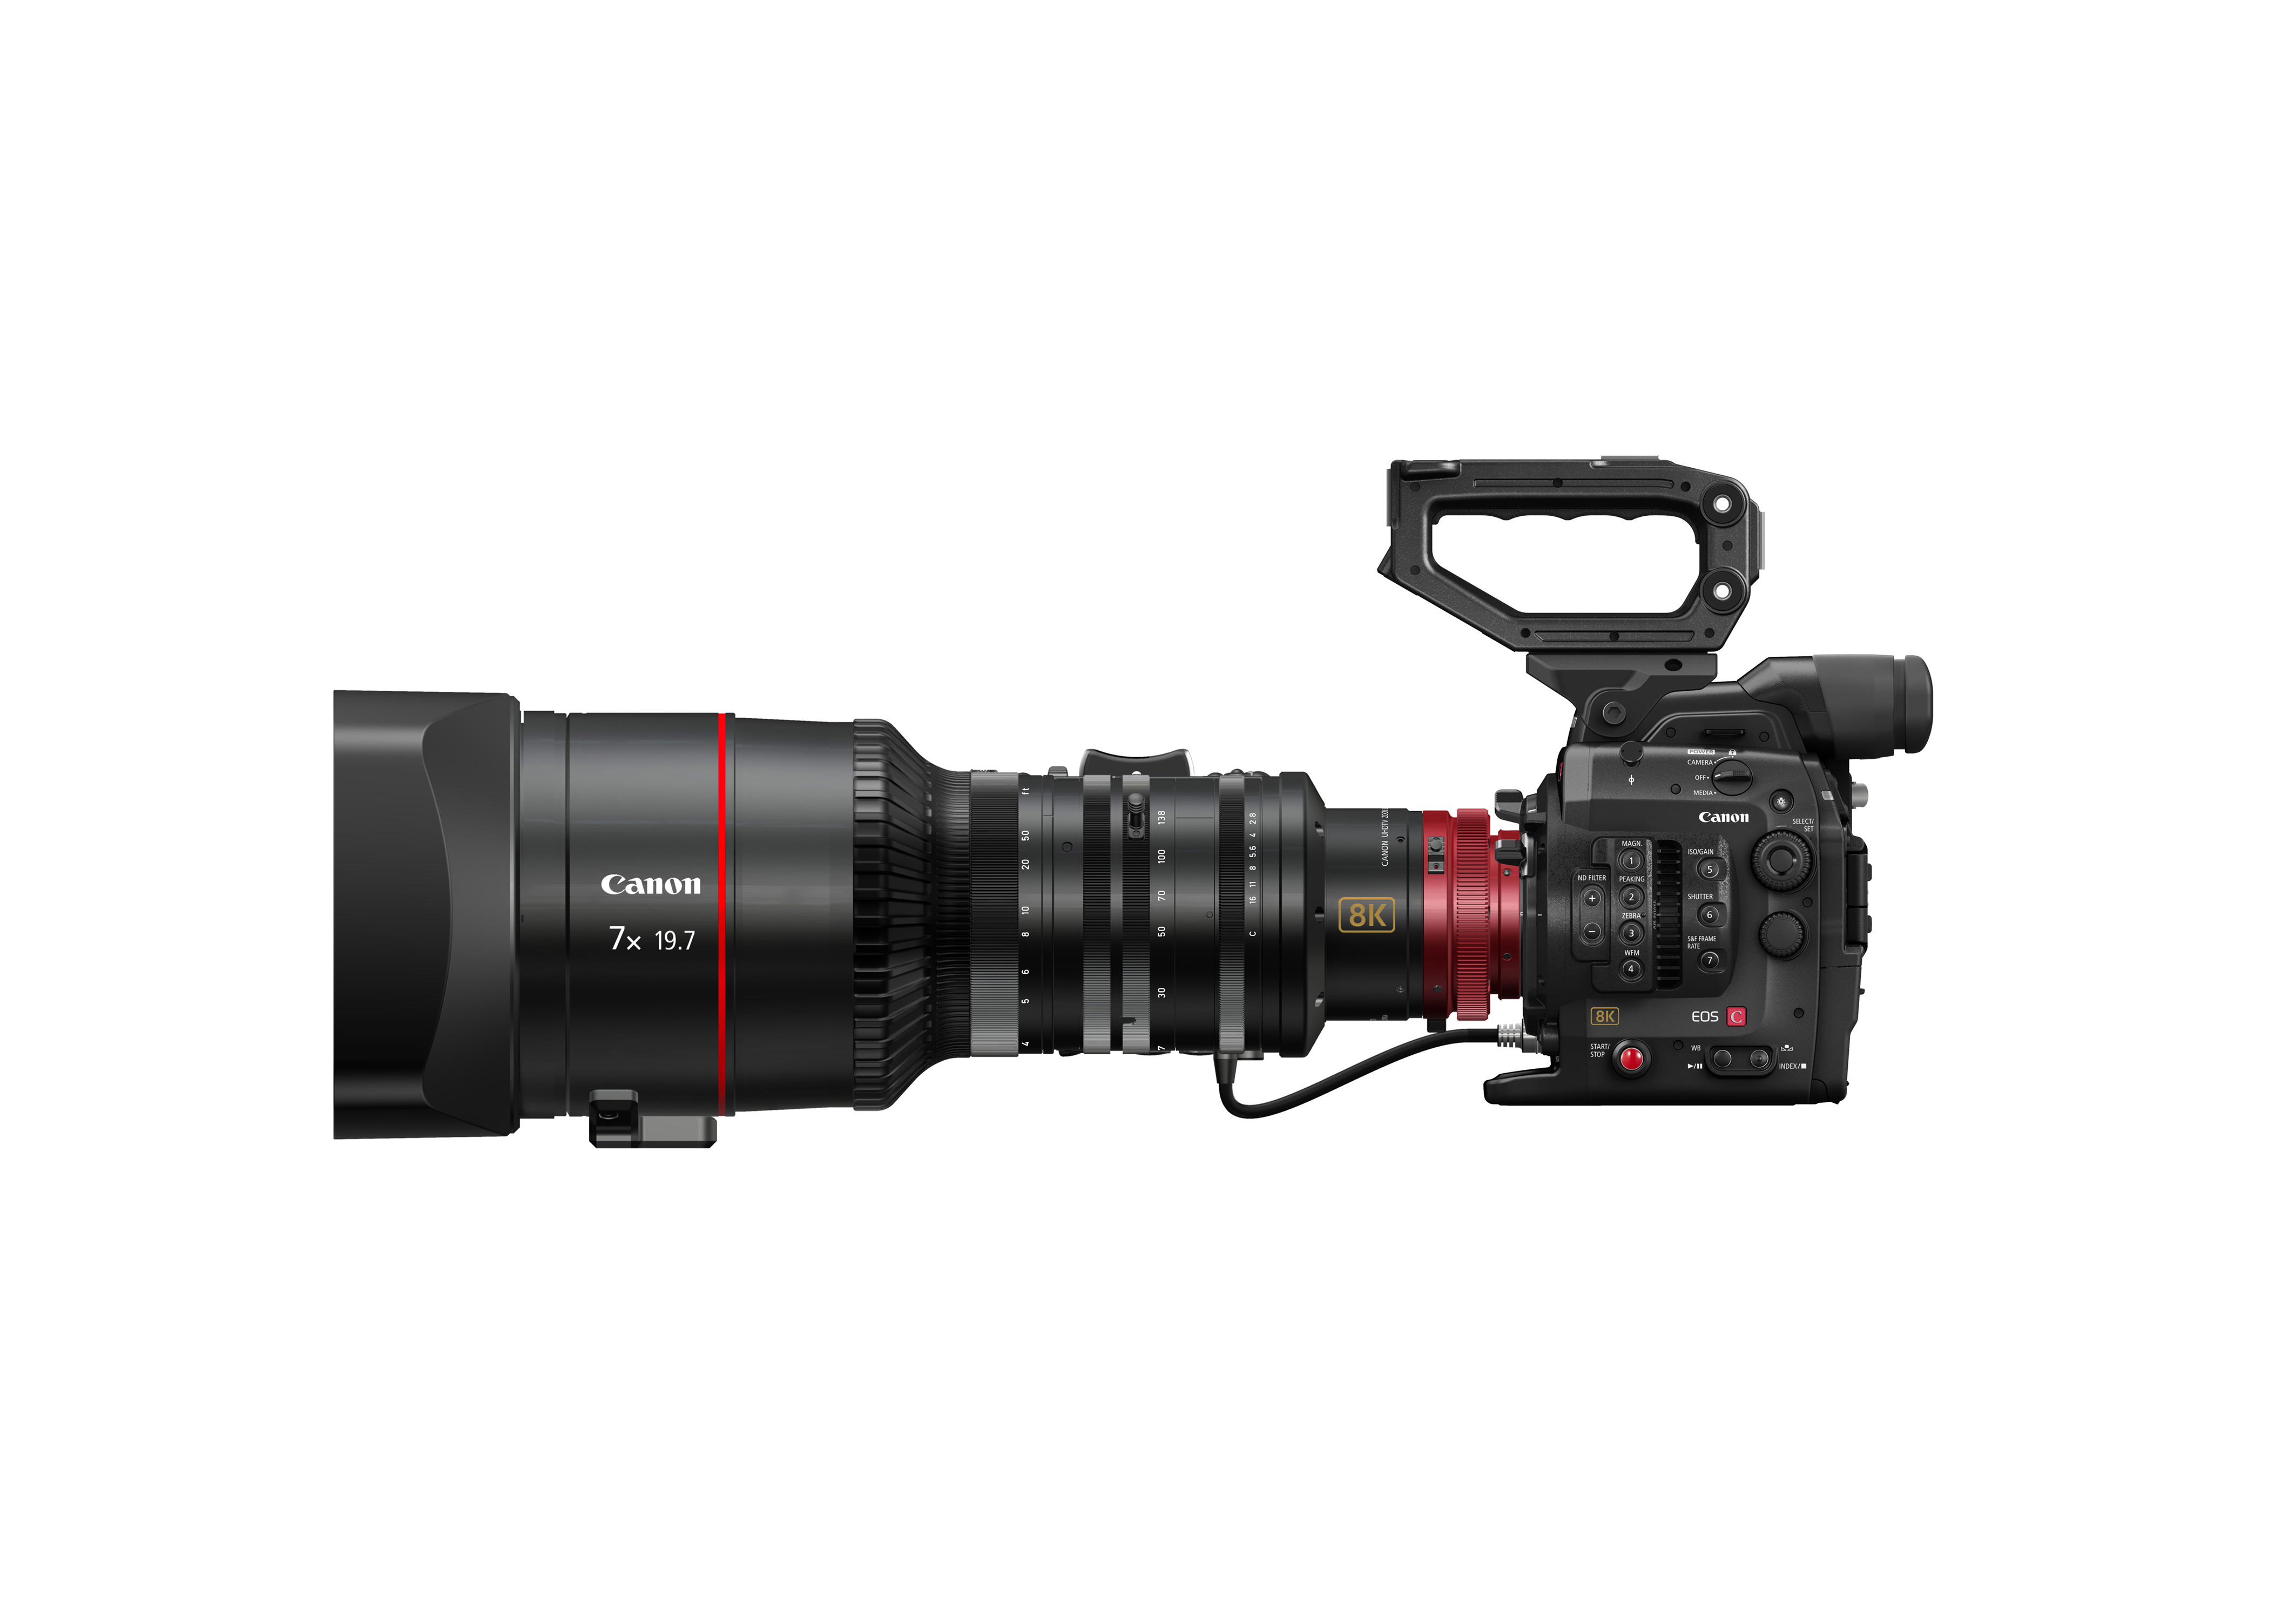 """Canon showed this version of an upcoming """"8K"""" videocamera will be able to capture images at a resolution of 8,192x4,320 pixels."""